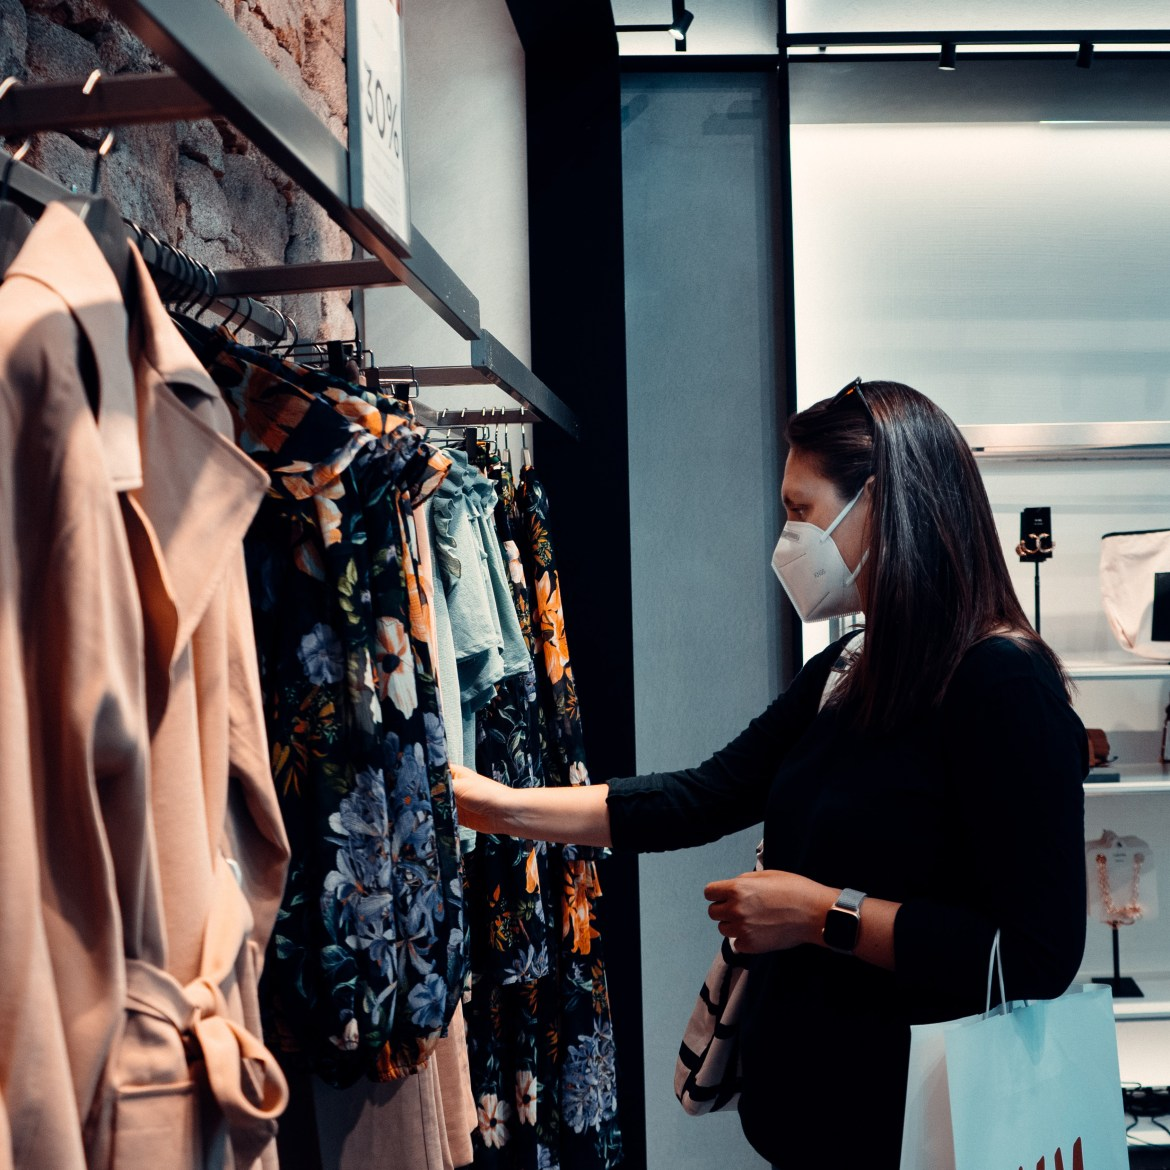 Fast Fashion, Why It's Bad, And Its Place In Our World